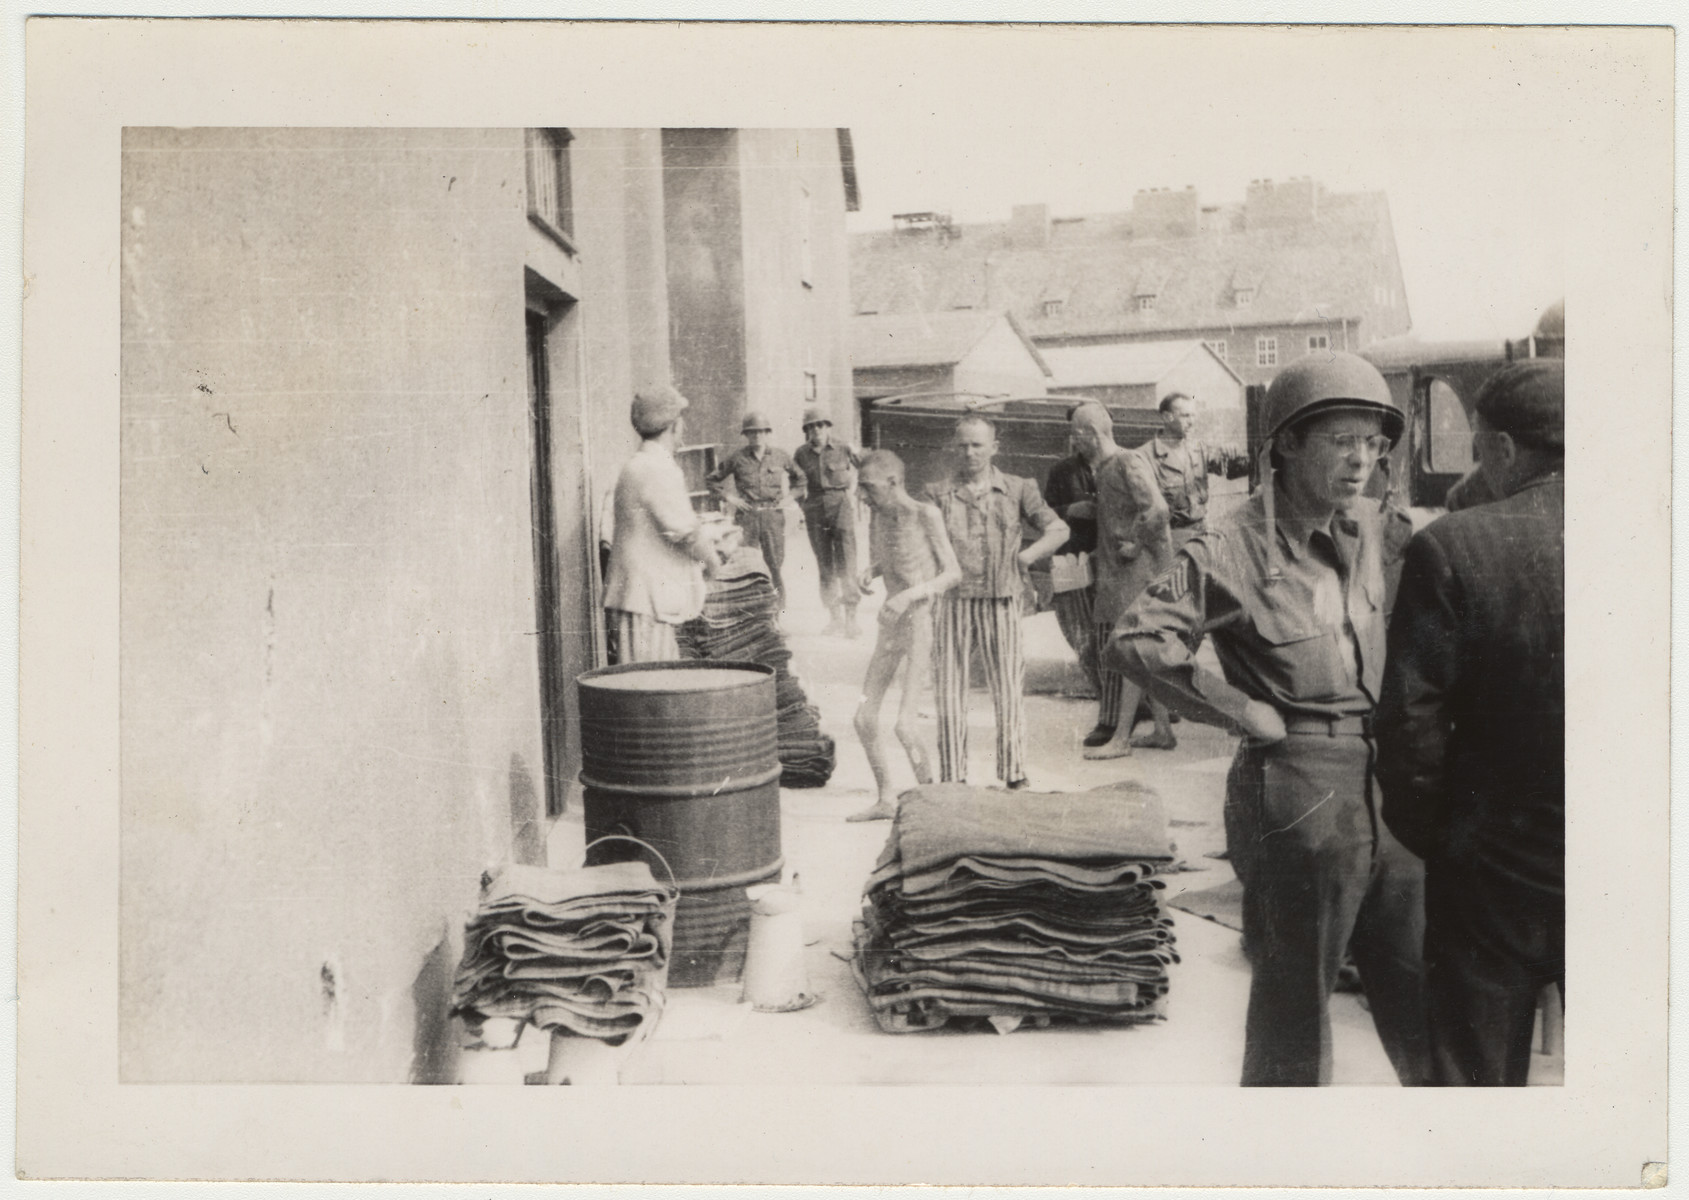 Original caption:  Inmates are stripped and sprayed with DDT.